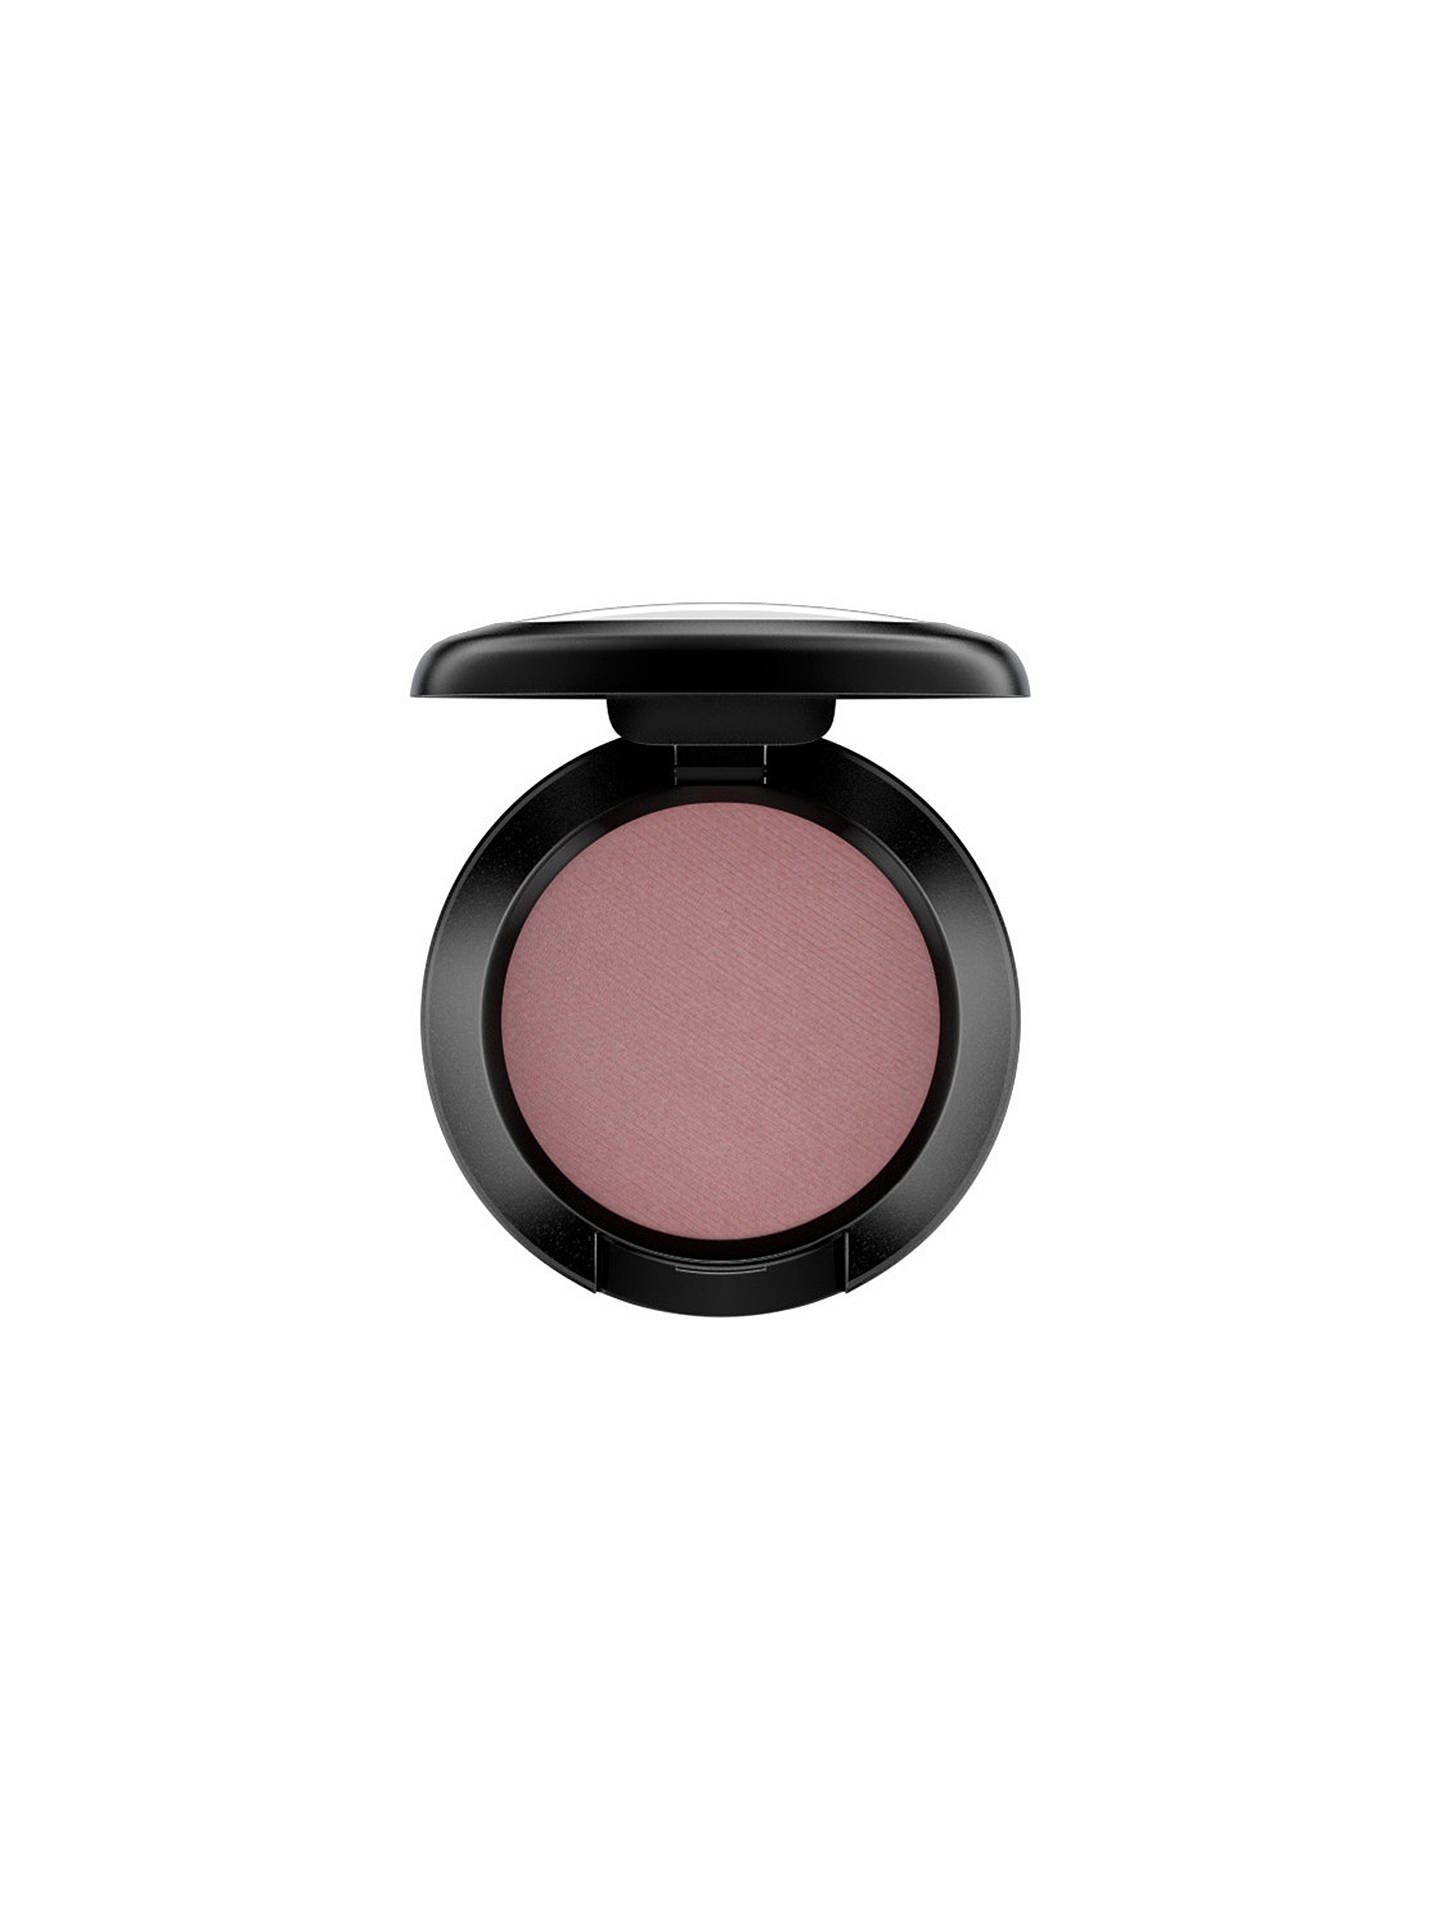 Buy MAC Eyeshadow - Satin, Haux Online at johnlewis.com